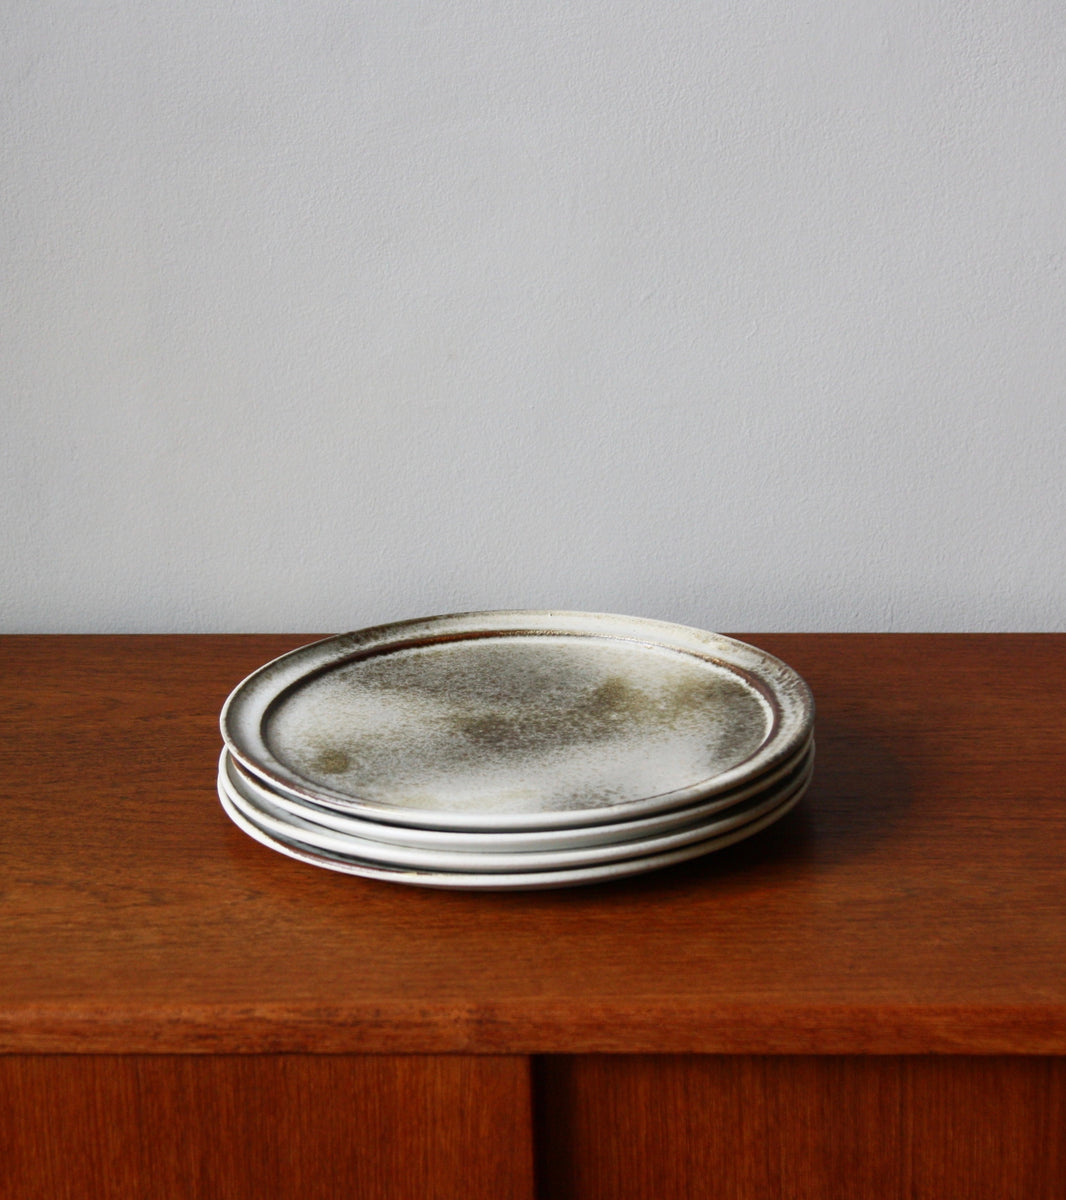 Custom 'Noma' Plate <br> in White & Brown Glaze <br> by KH Würtz